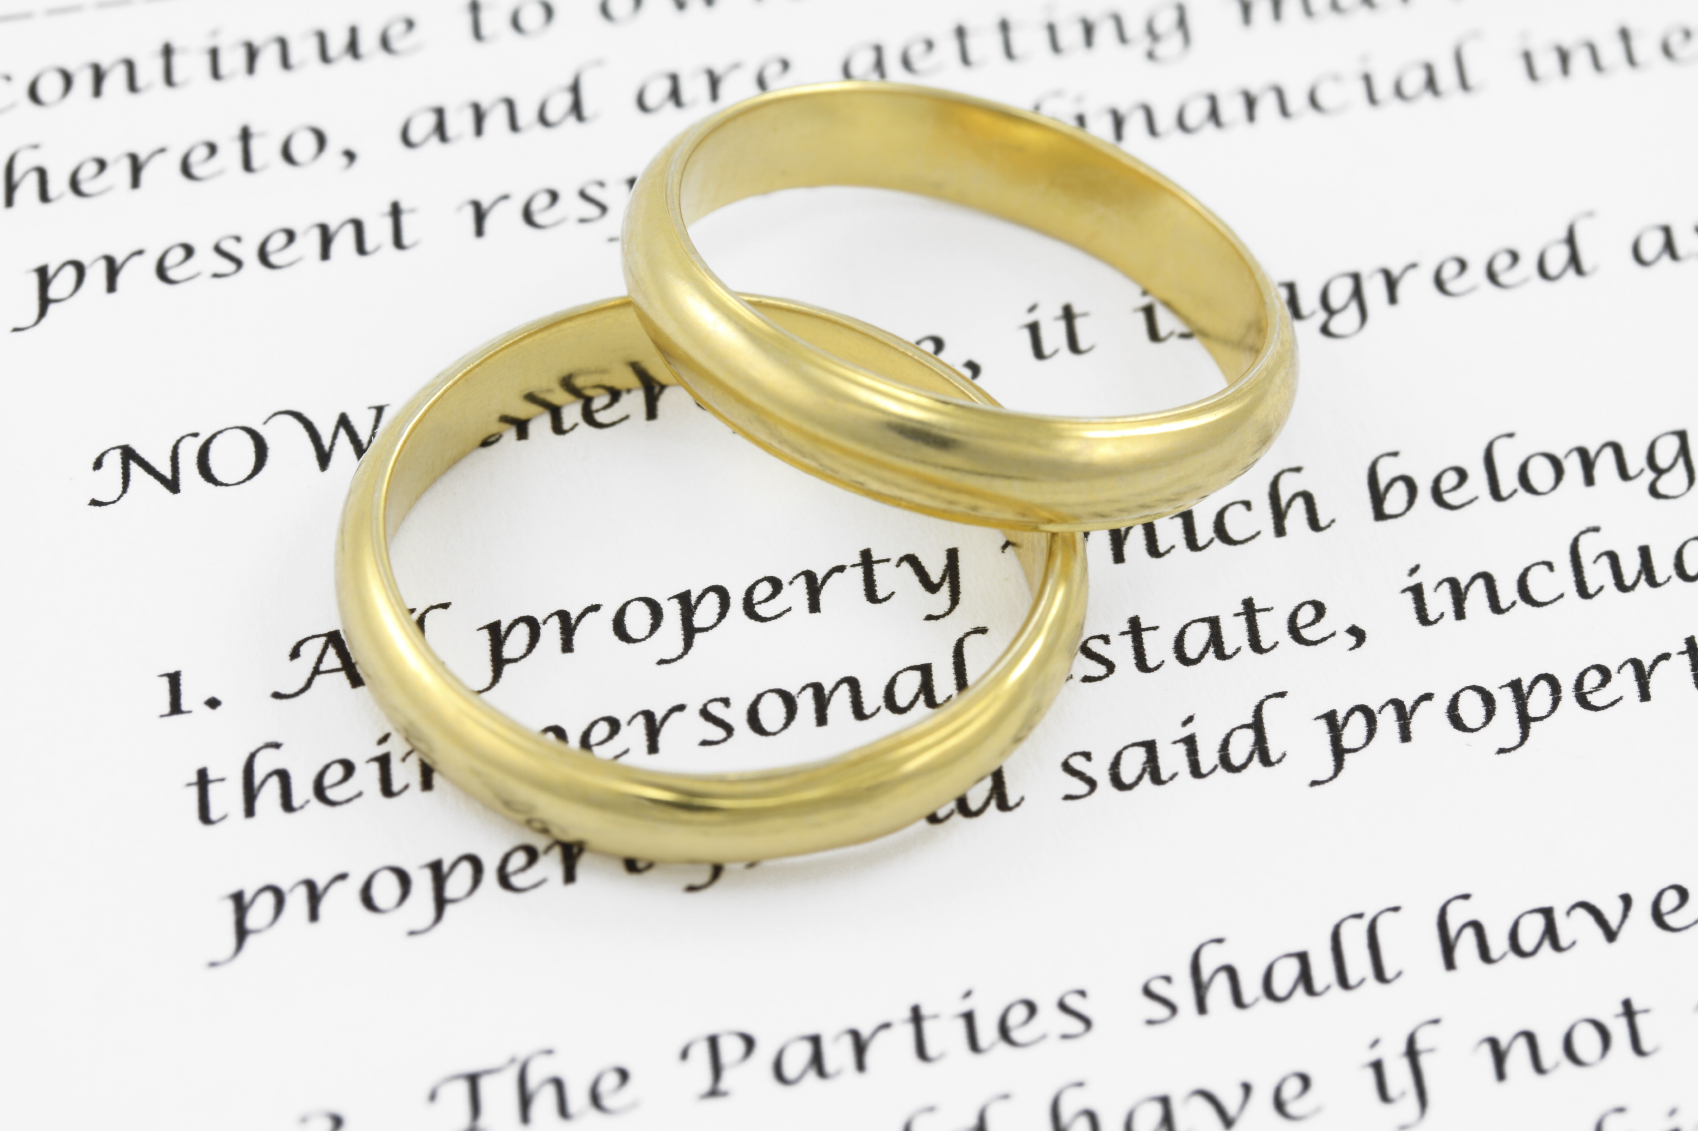 No Prenuptial Agreement in Christ